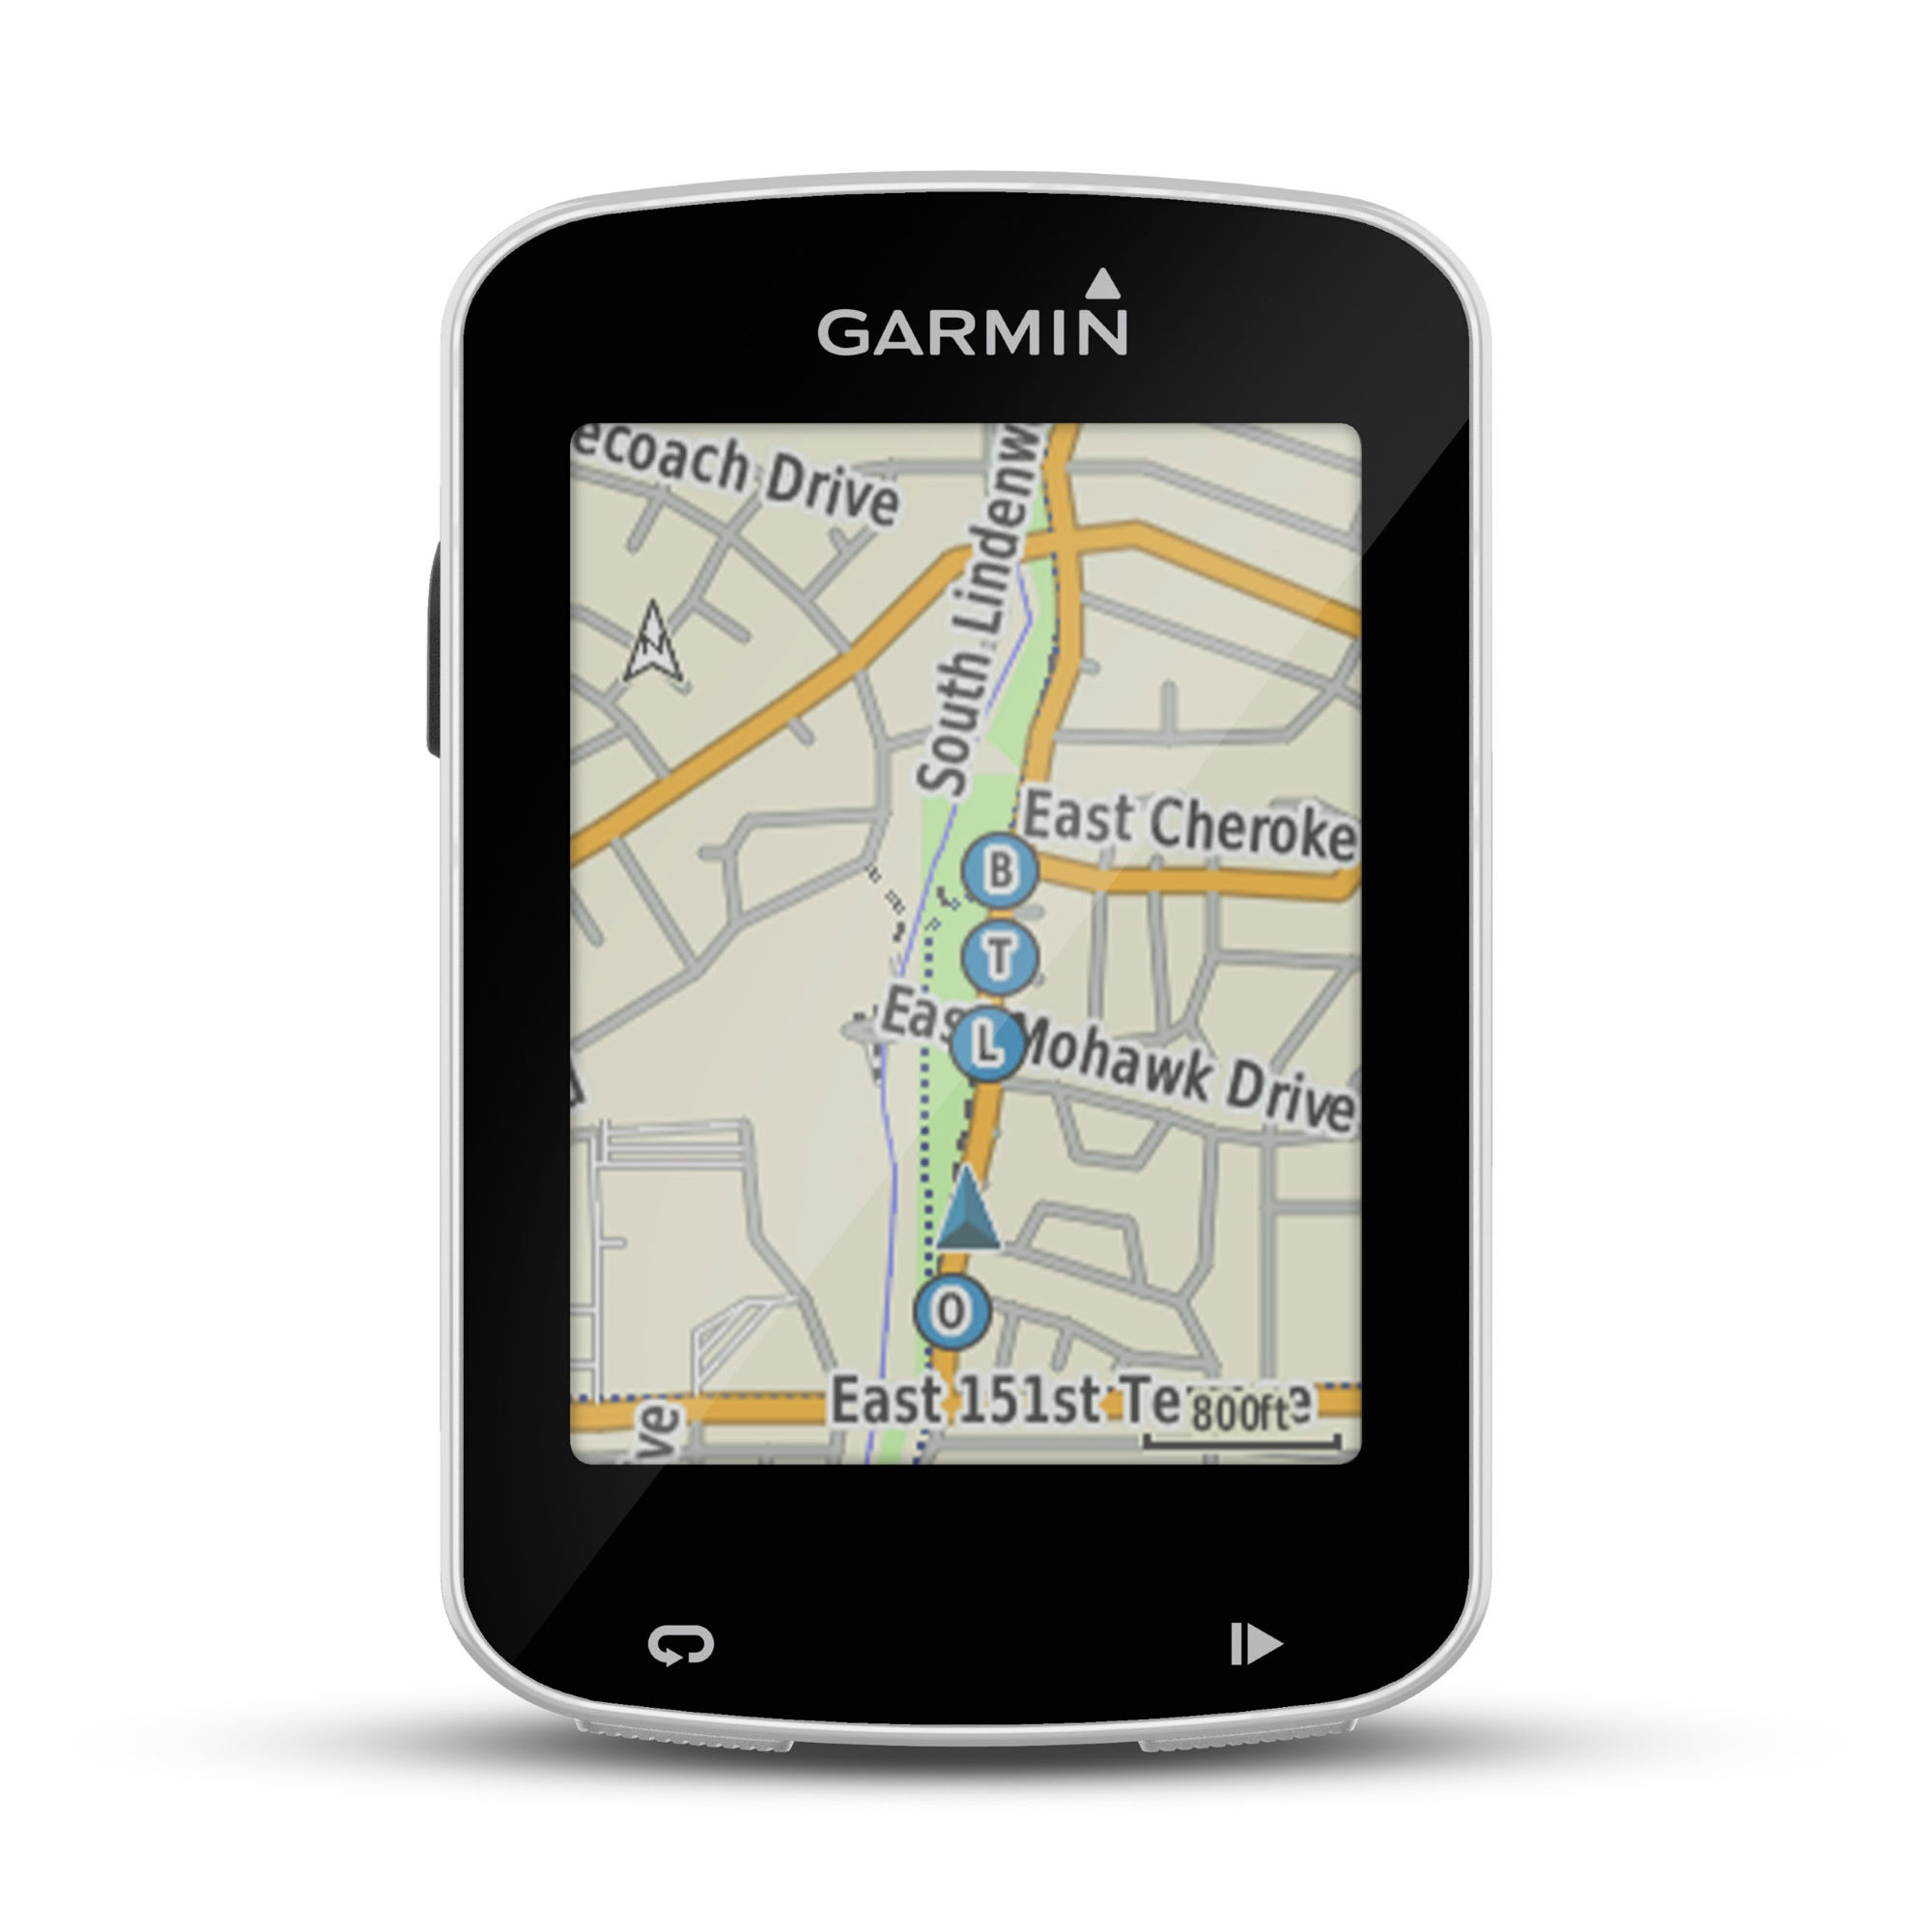 Garmin Cycle Computer >> Compteurs vélo GPS | Garmin | Edge Explore 820 GPS Cycle ...